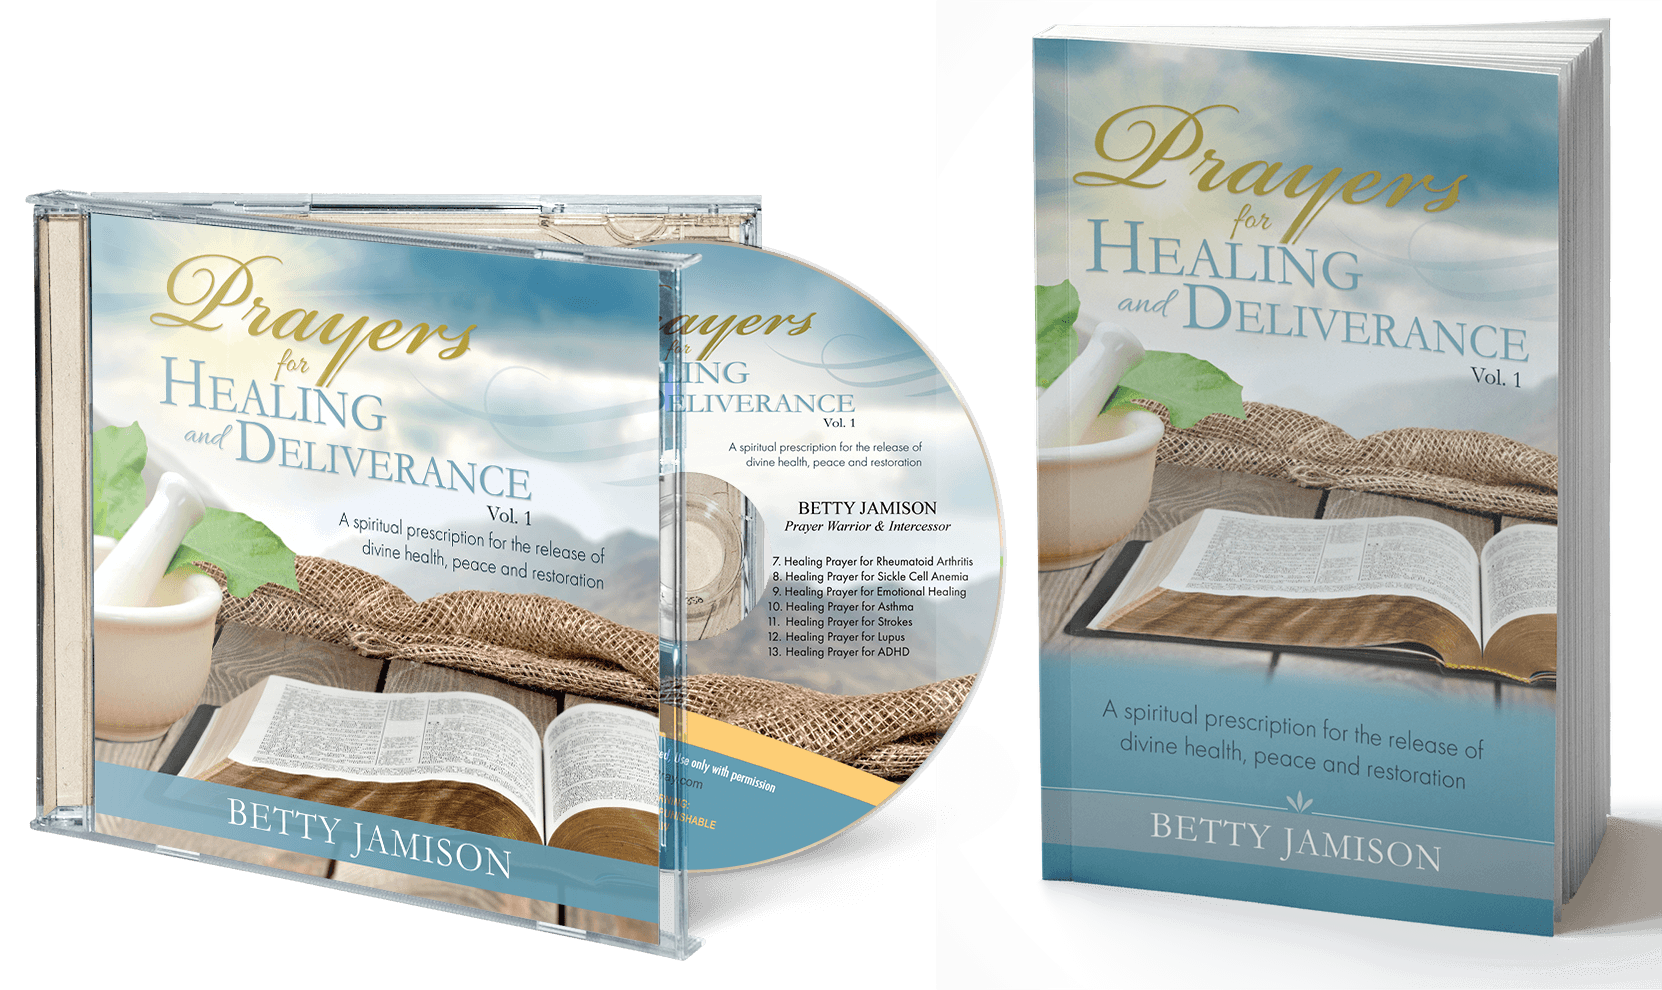 Prayers for Healing and Deliverance CD & Book